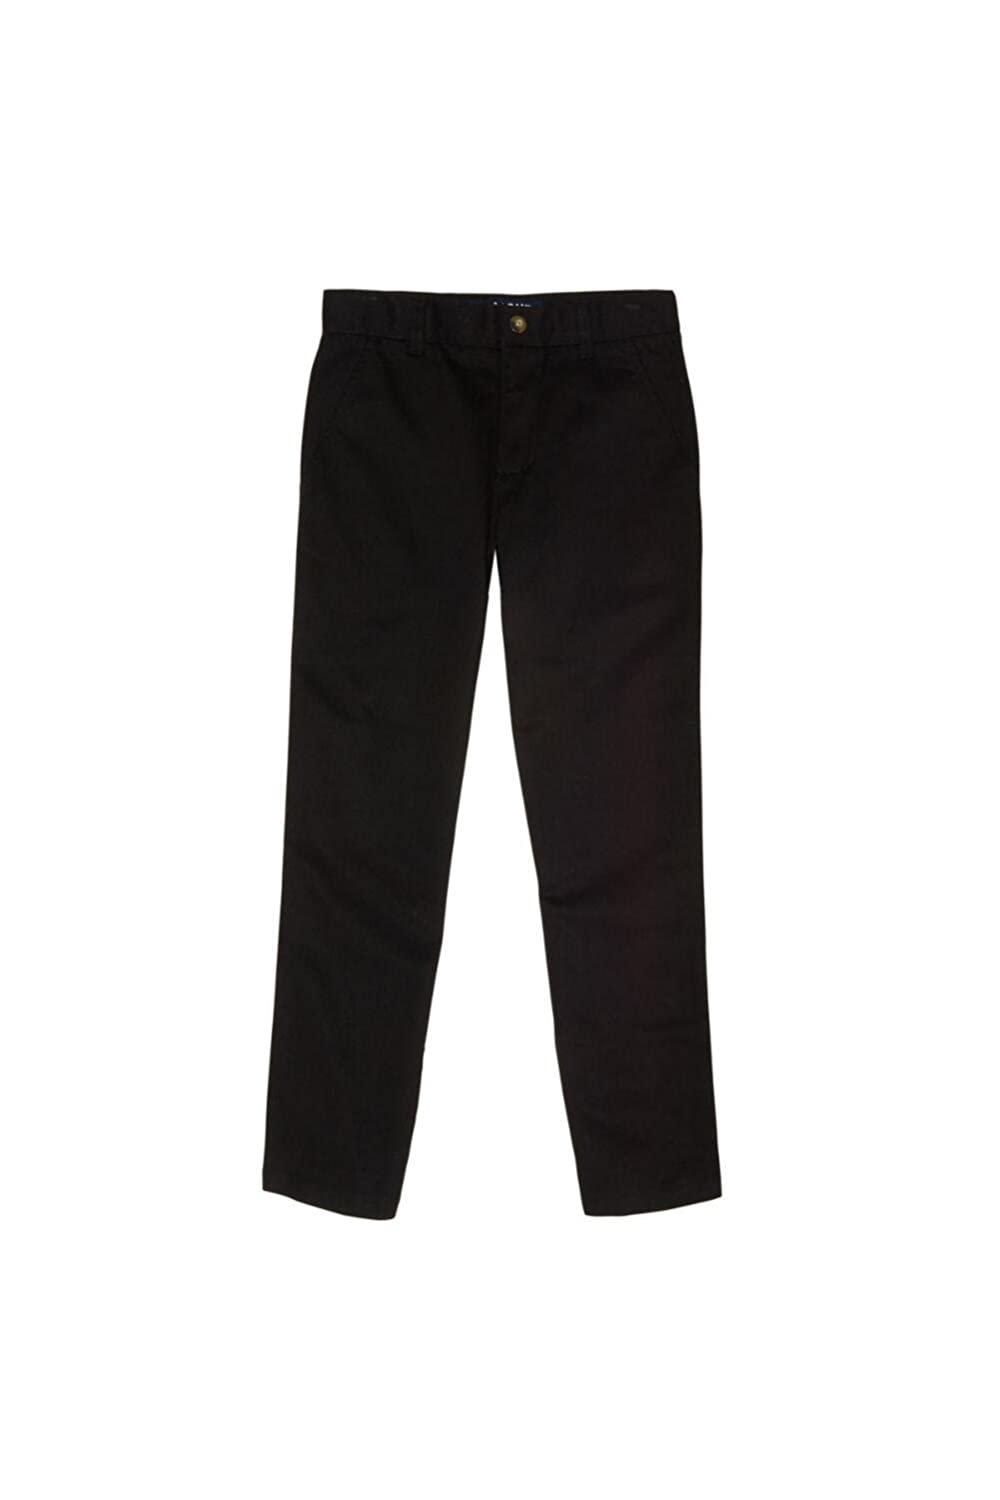 French Toast Boys' Straight Leg Twill Pant (14, Black) 1599F BLAC 14